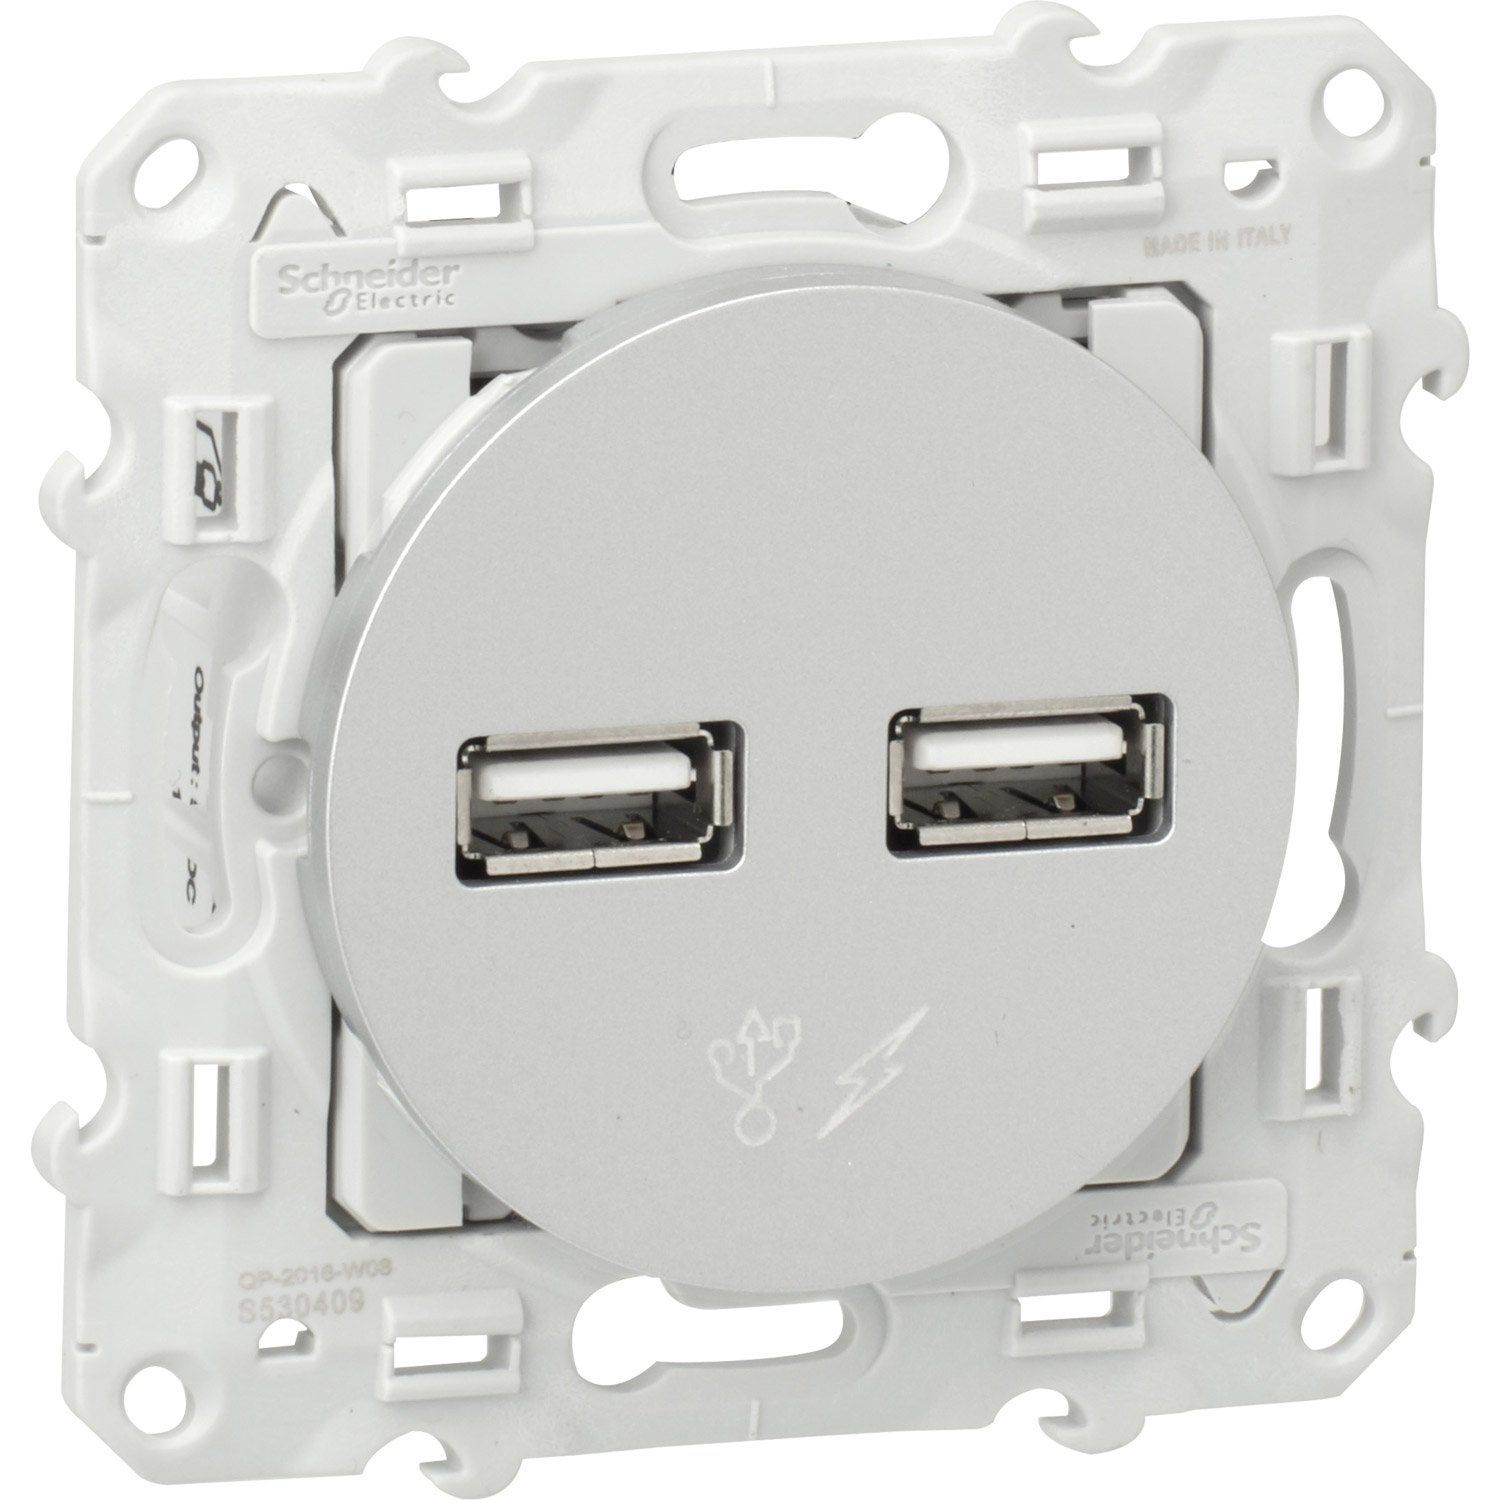 Prise Chargeur Double Usb Odace Schneider Electric Gris